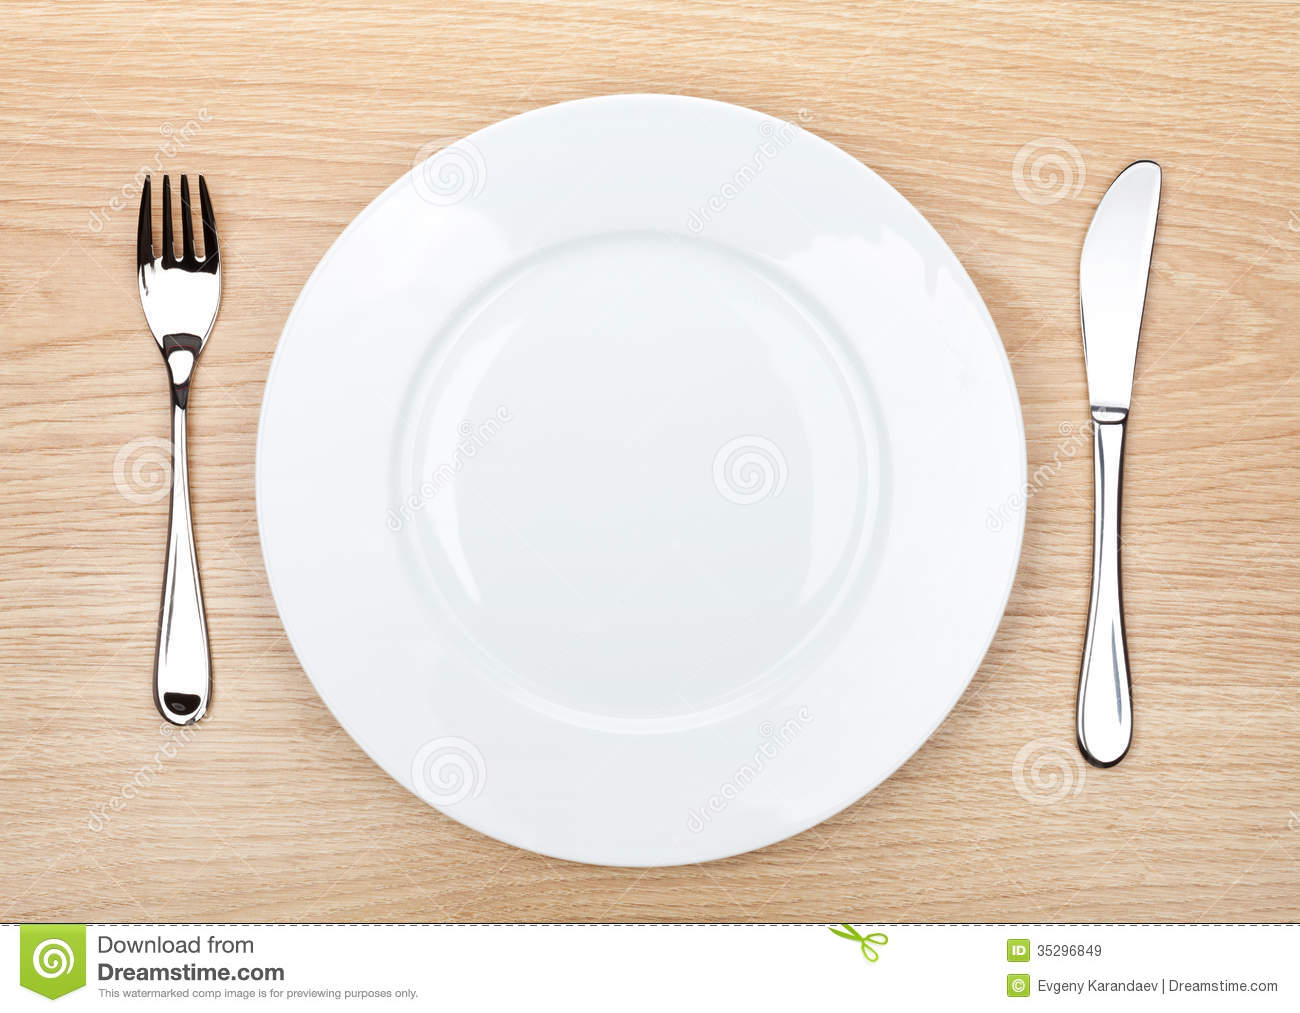 ... Silverware On Wooden Table Royalty Free Stock Images - Image: 35296849